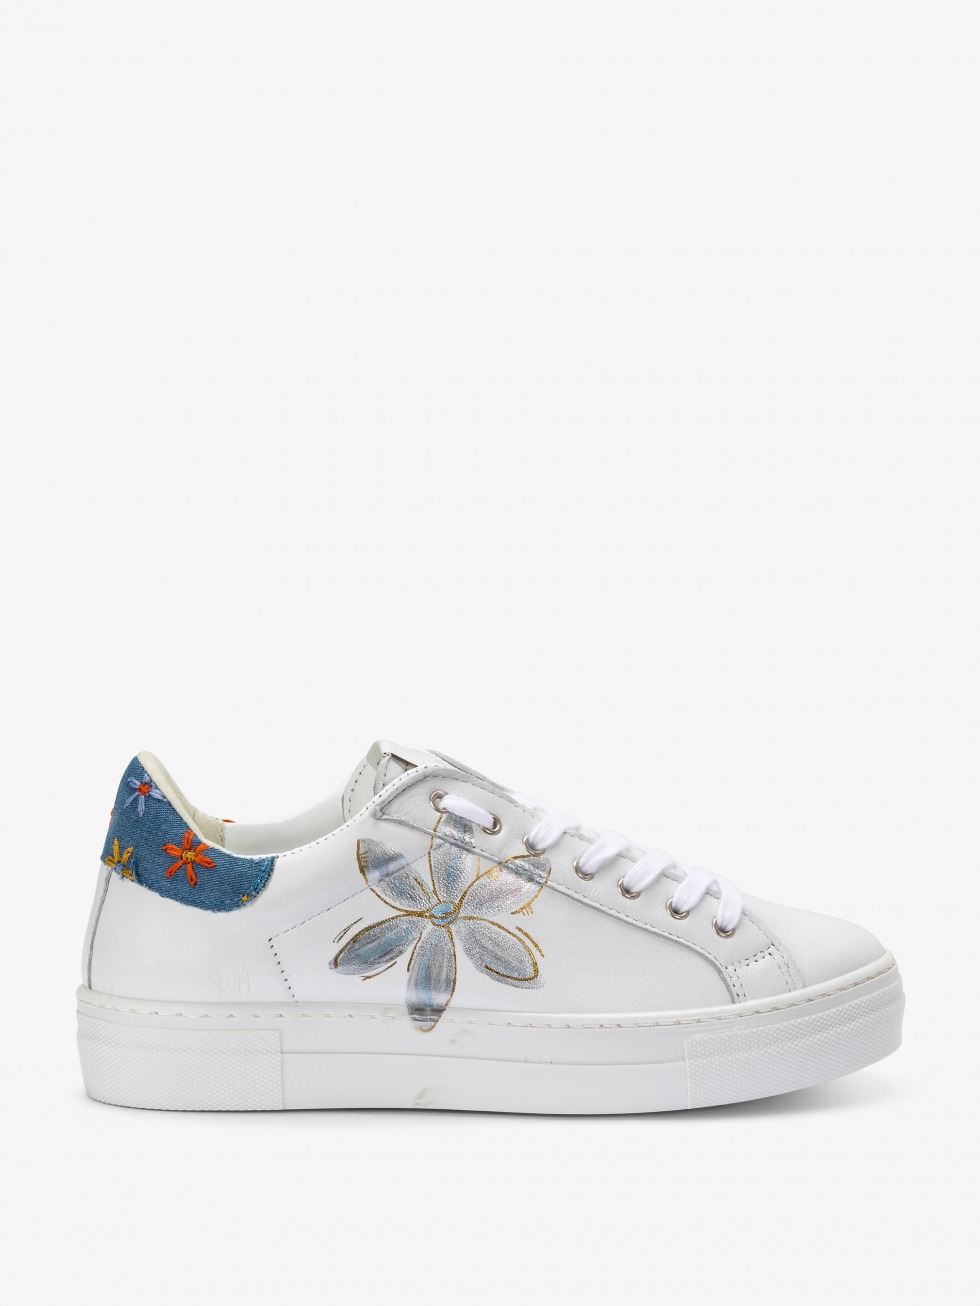 Sneakers Martini Jeans - Flowers